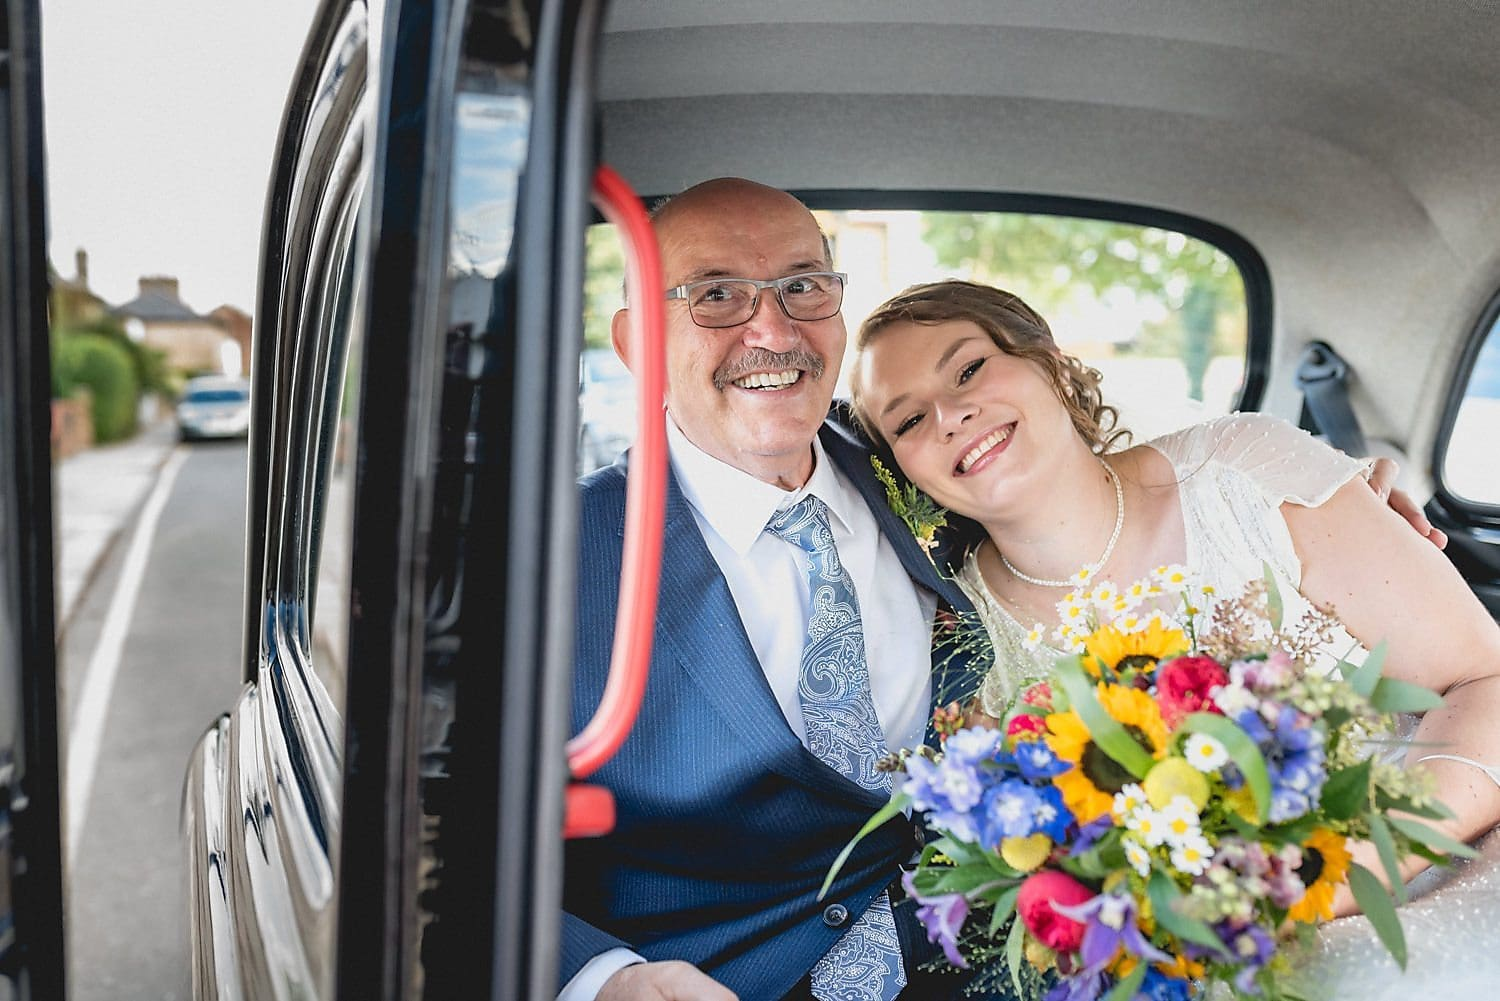 The bride and her father arrive at the church in the back of a black cab